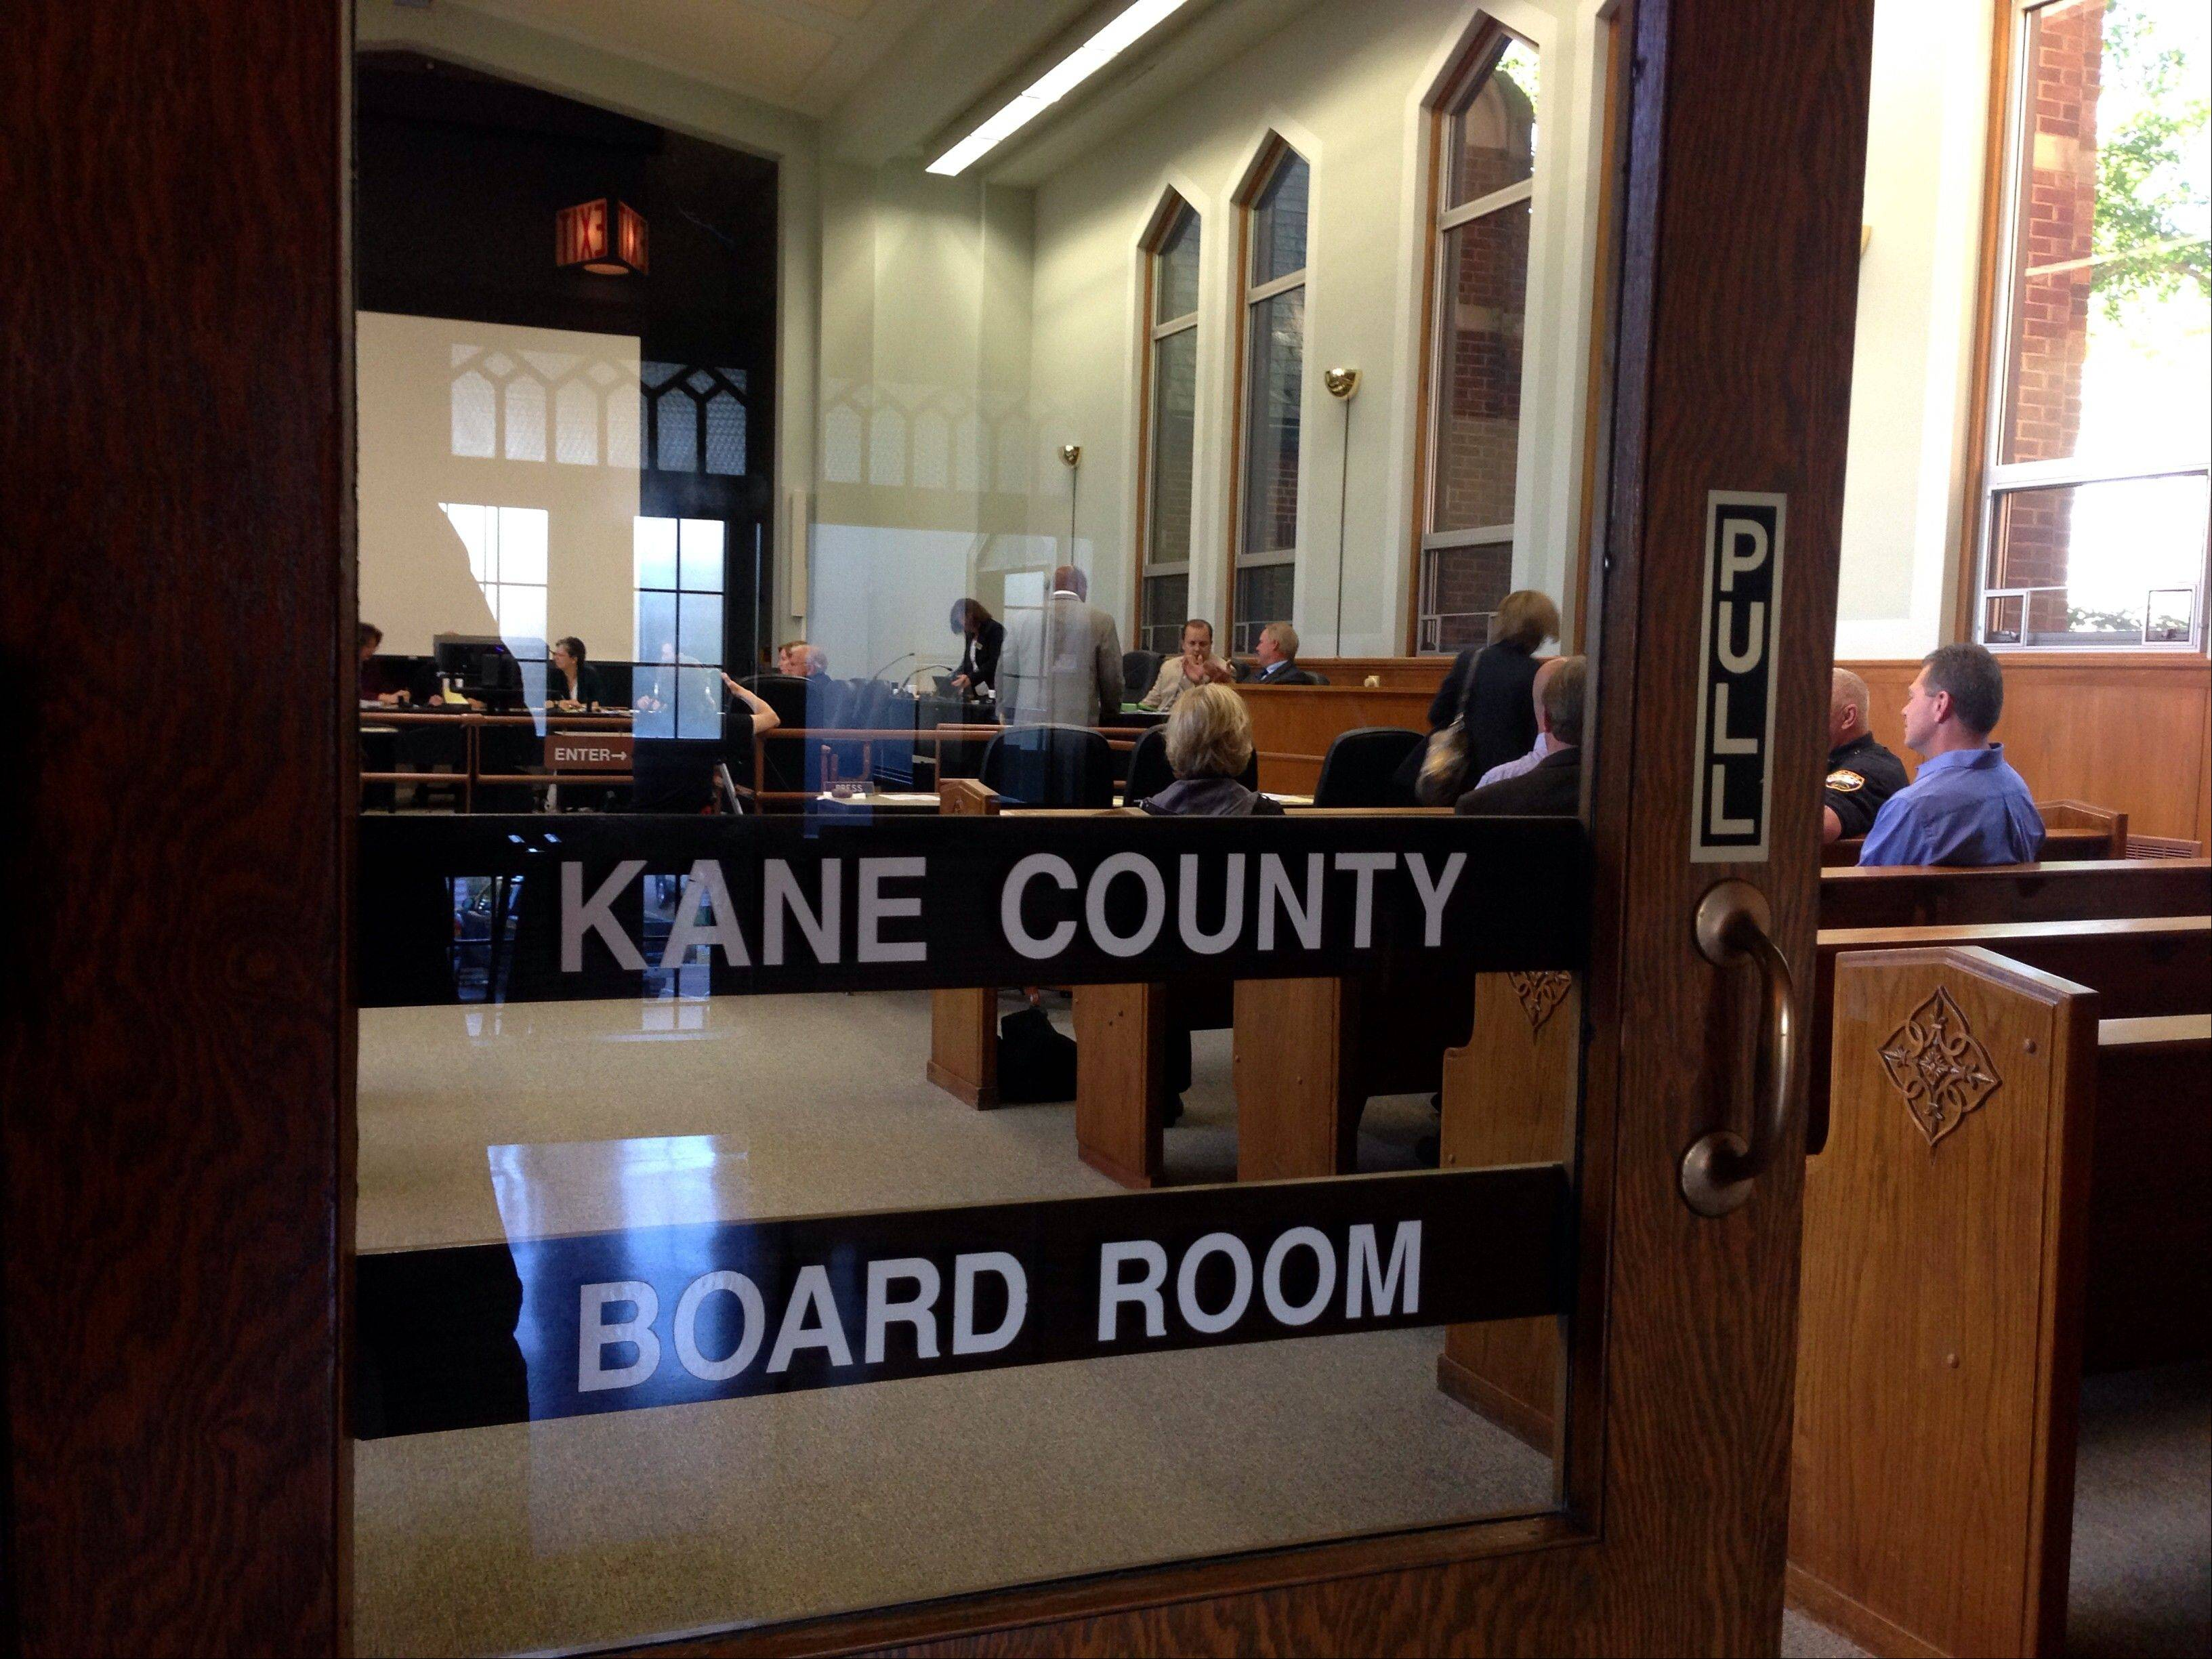 The hiring process for high-level Kane County jobs will occur mostly behind closed doors if the county board approves a change requested by County Chairman Chris Lauzen.